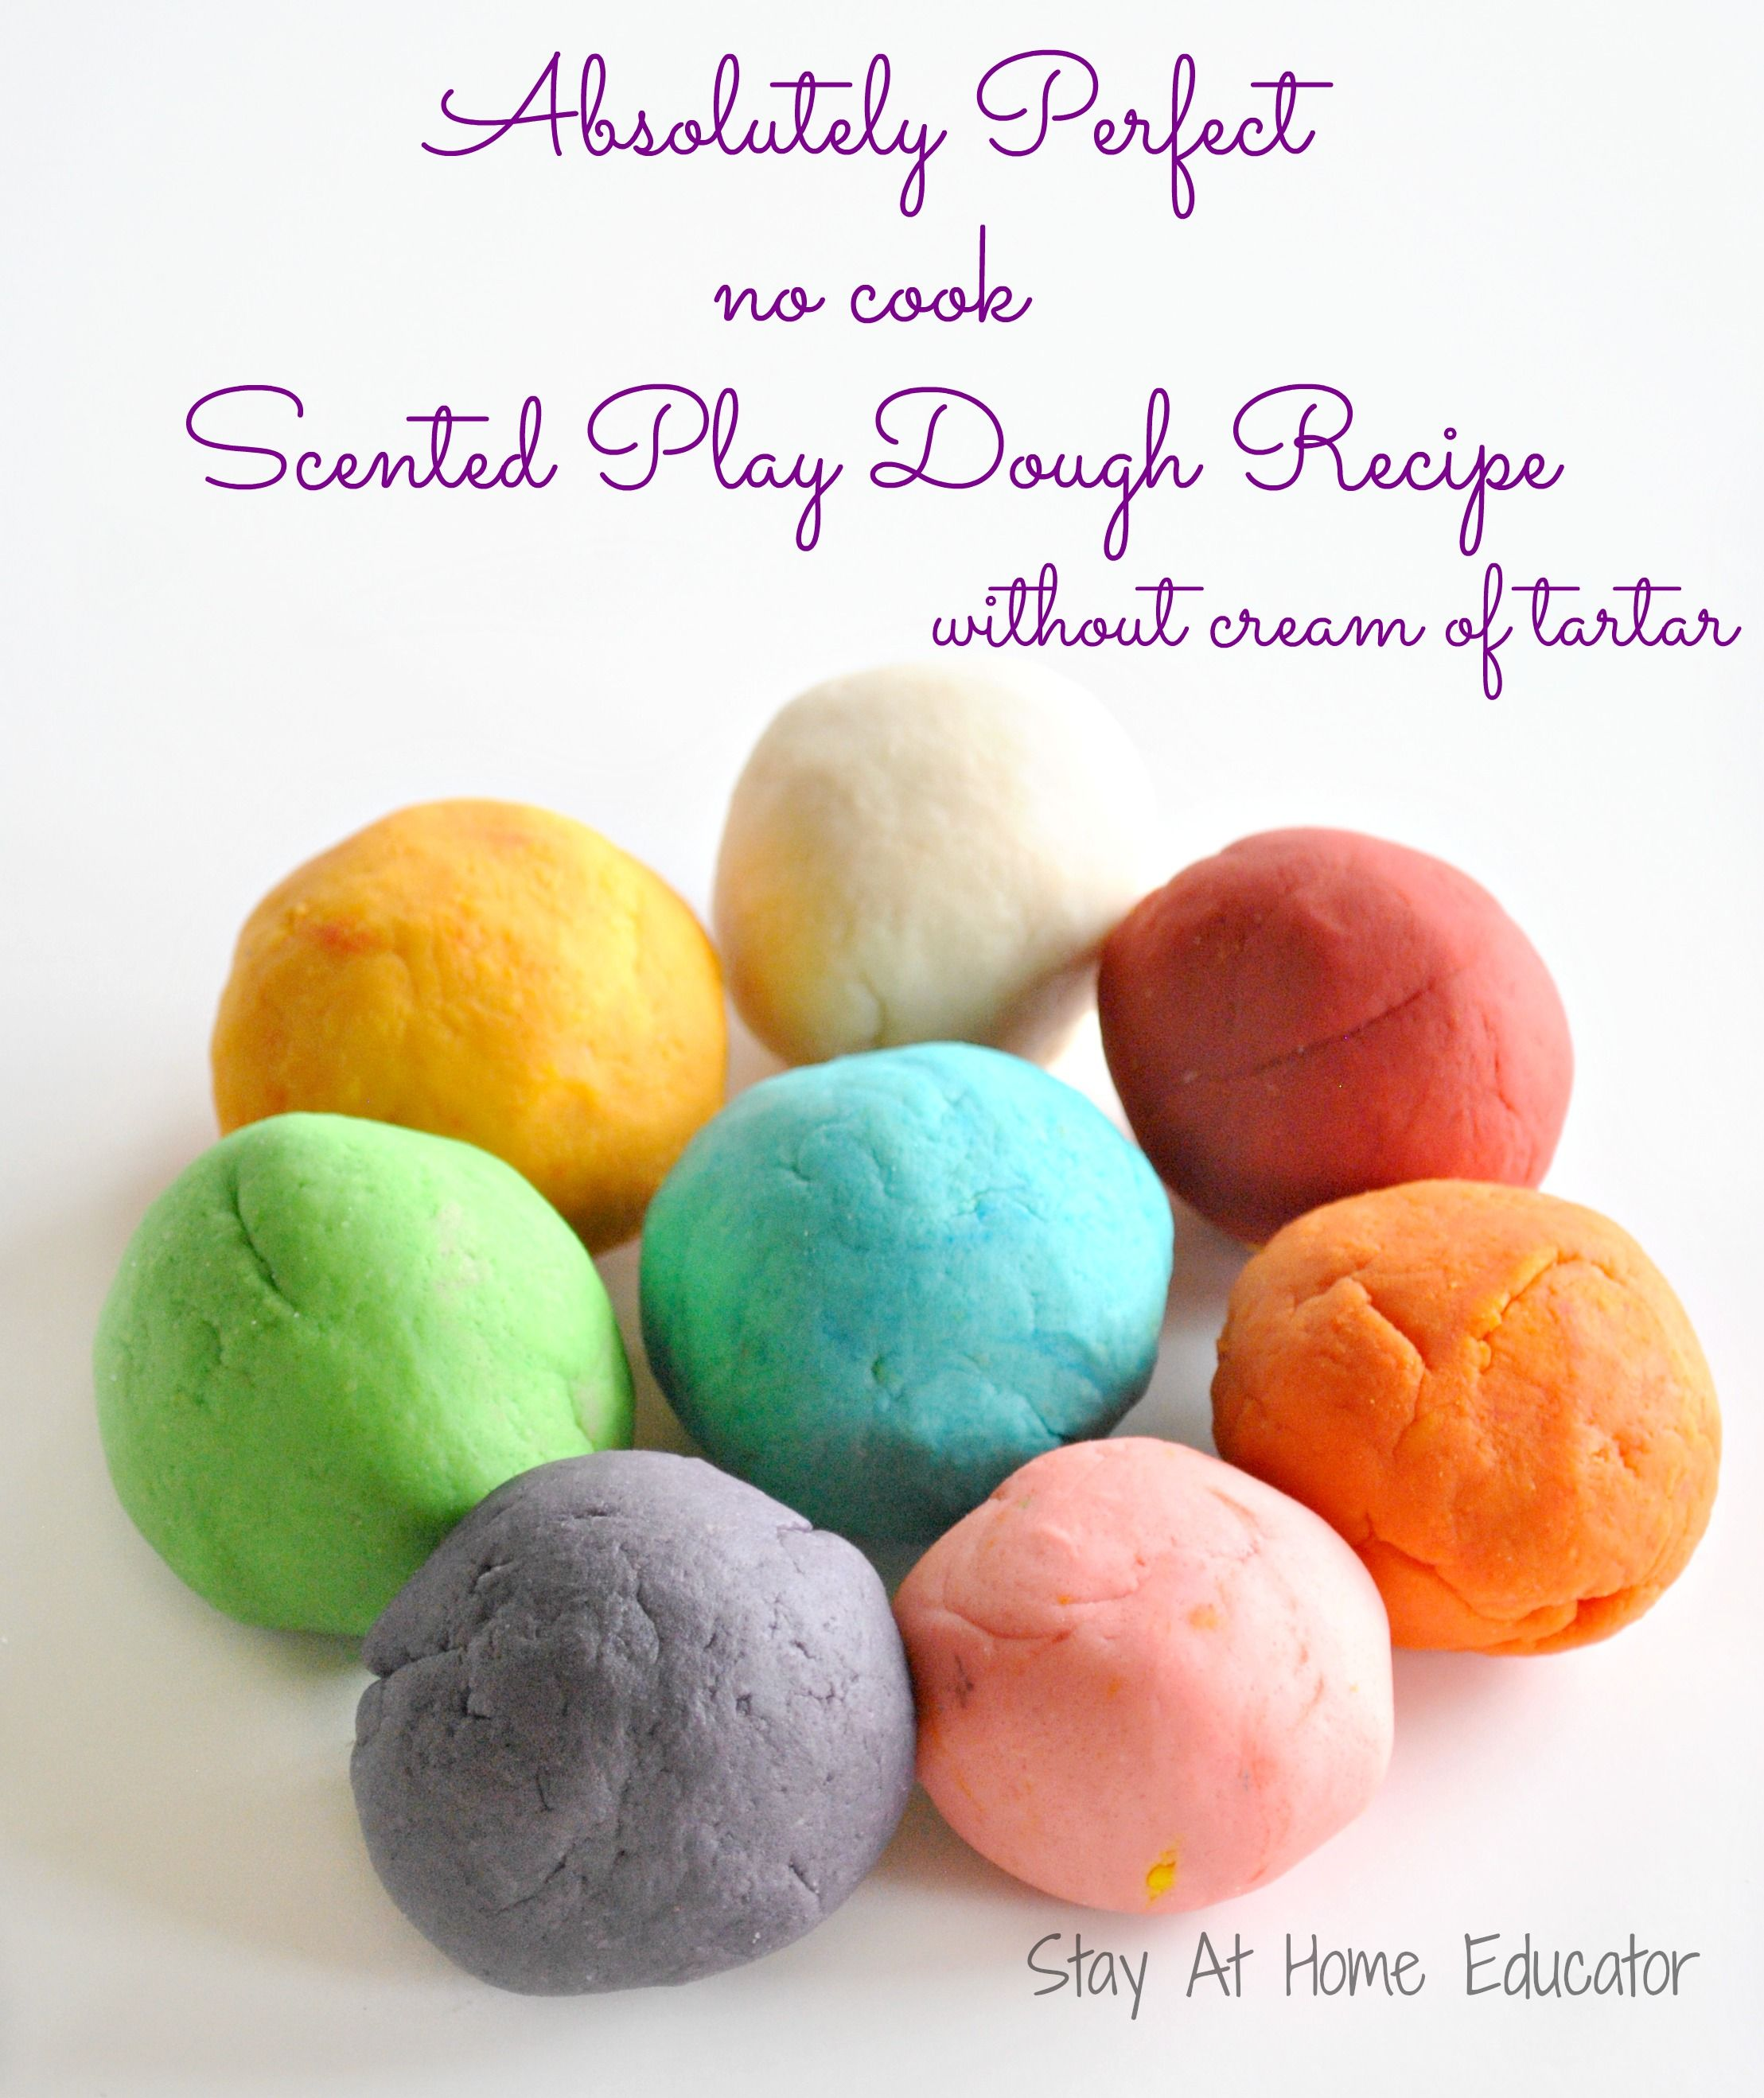 Scented NoCook Playdough Recipe without Cream of Tartar